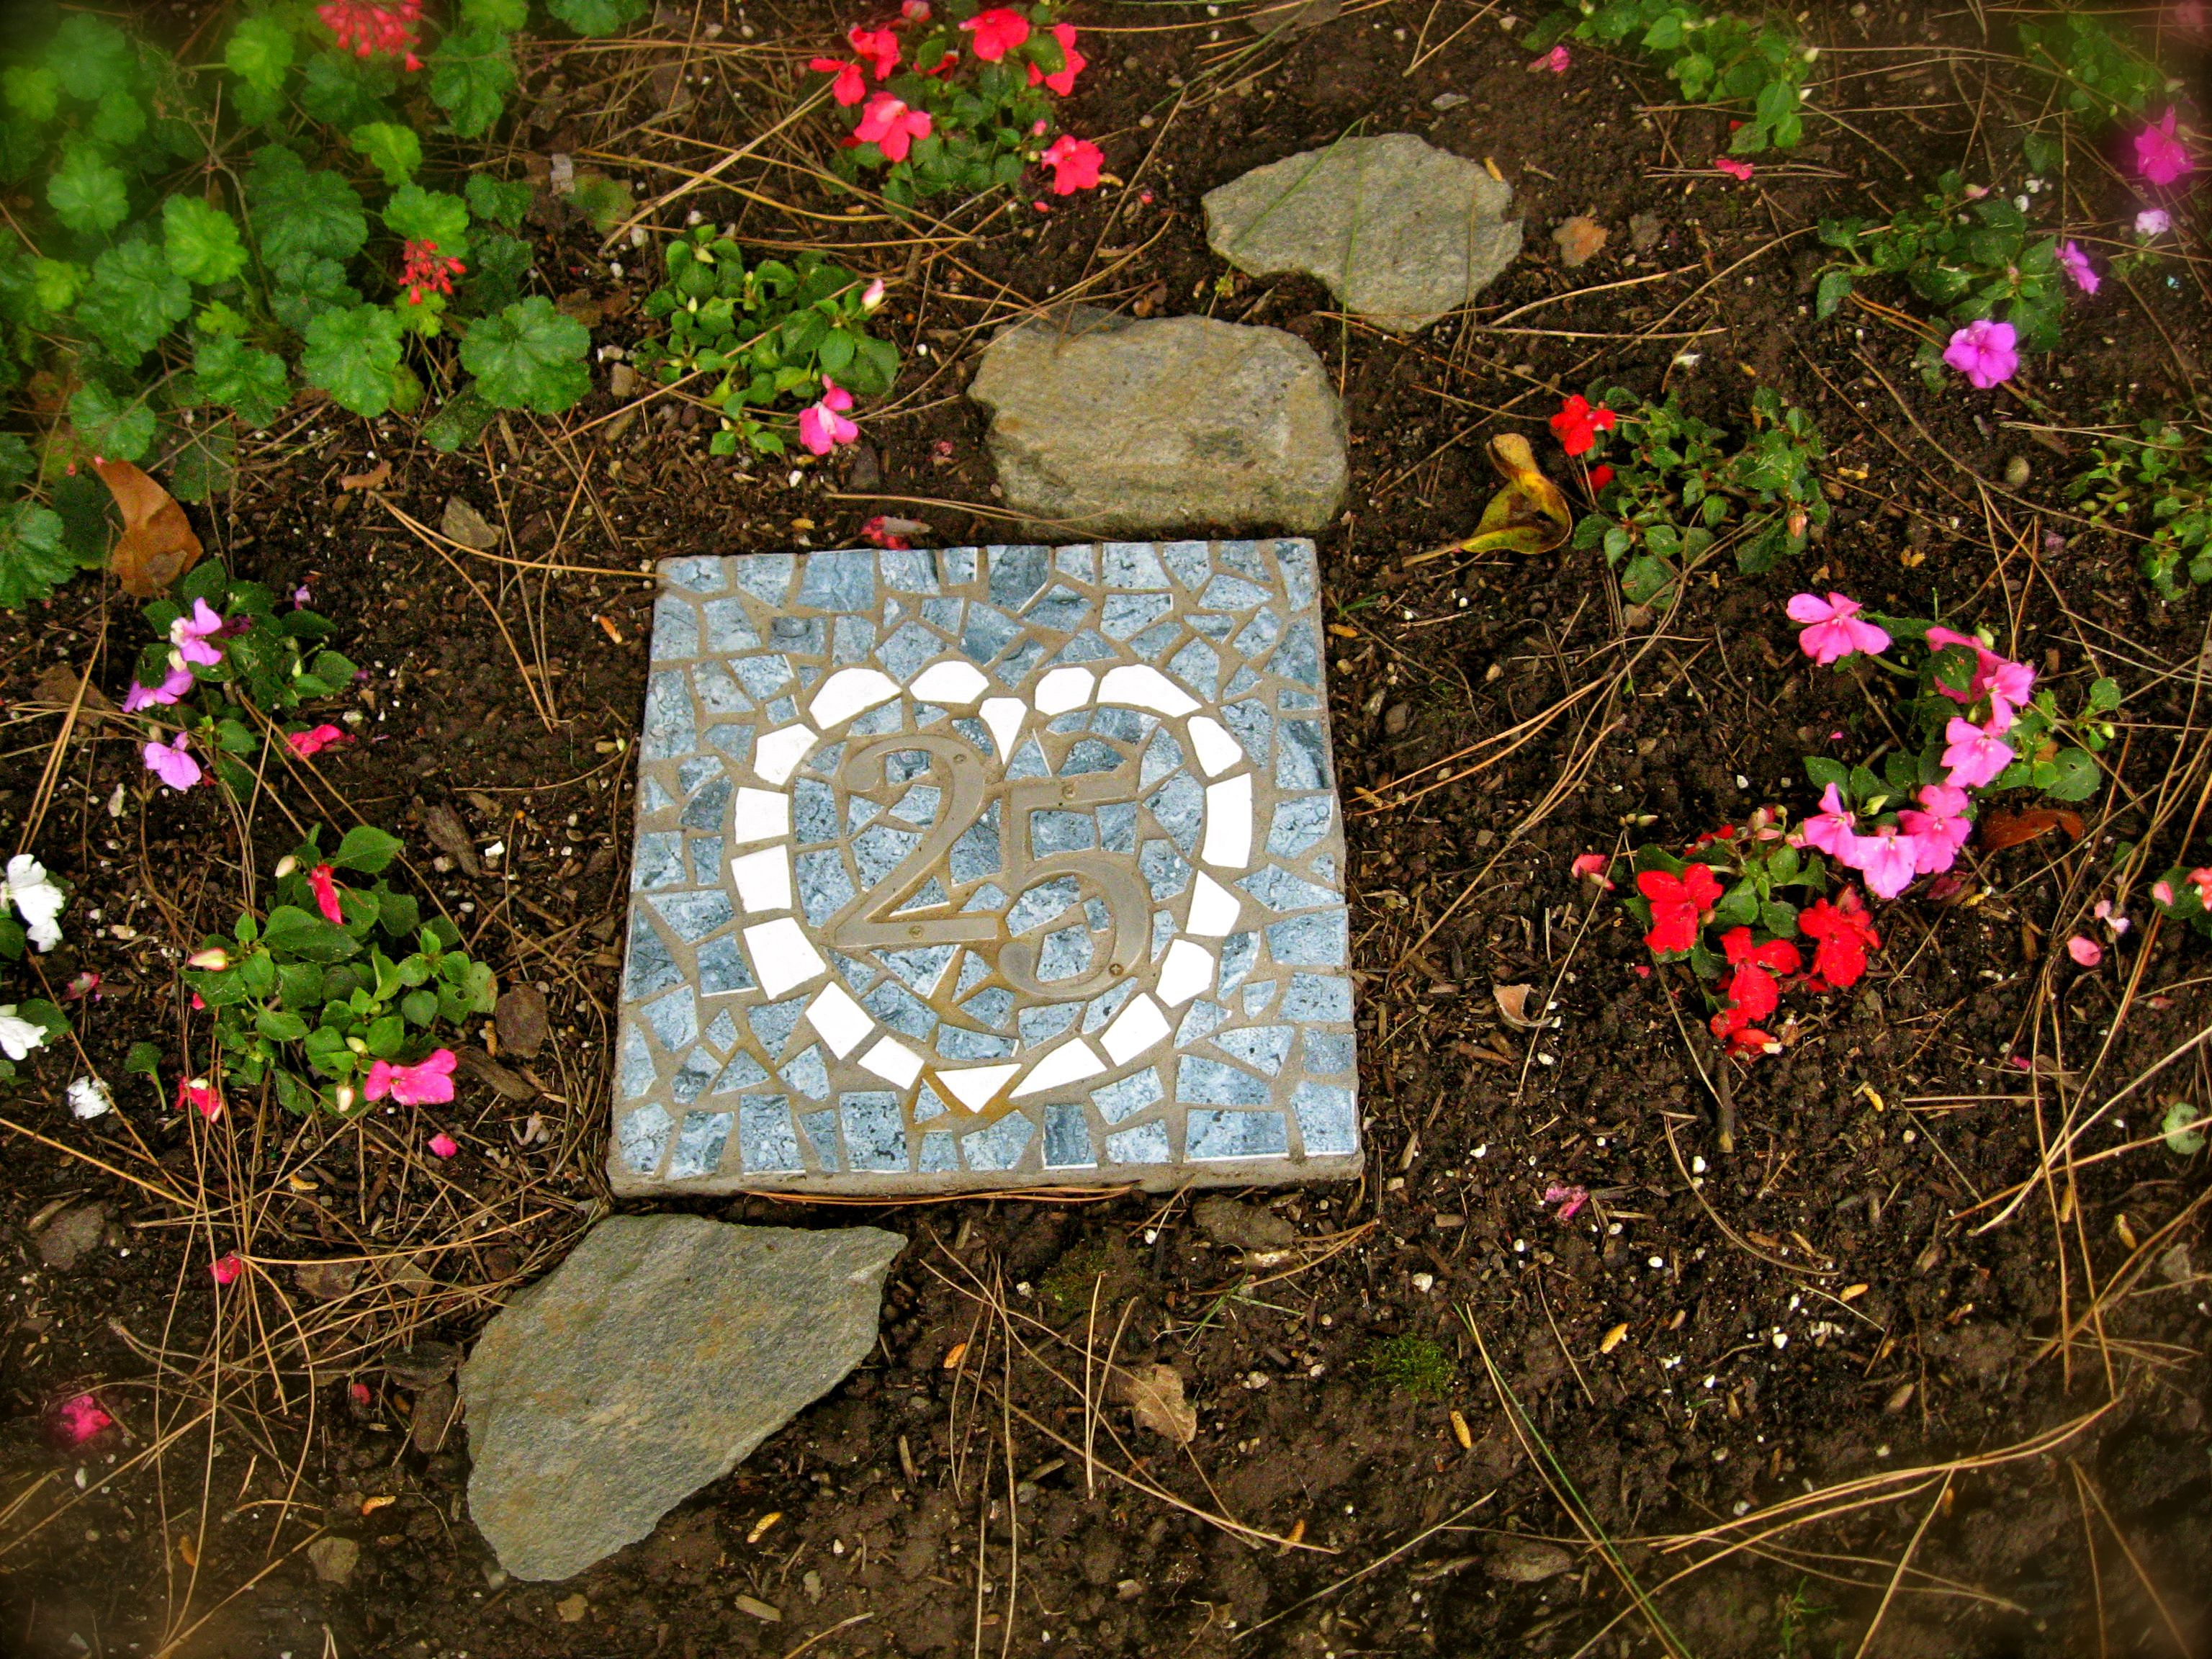 Twenty fifth wedding anniversary celebrated with a tiled garden